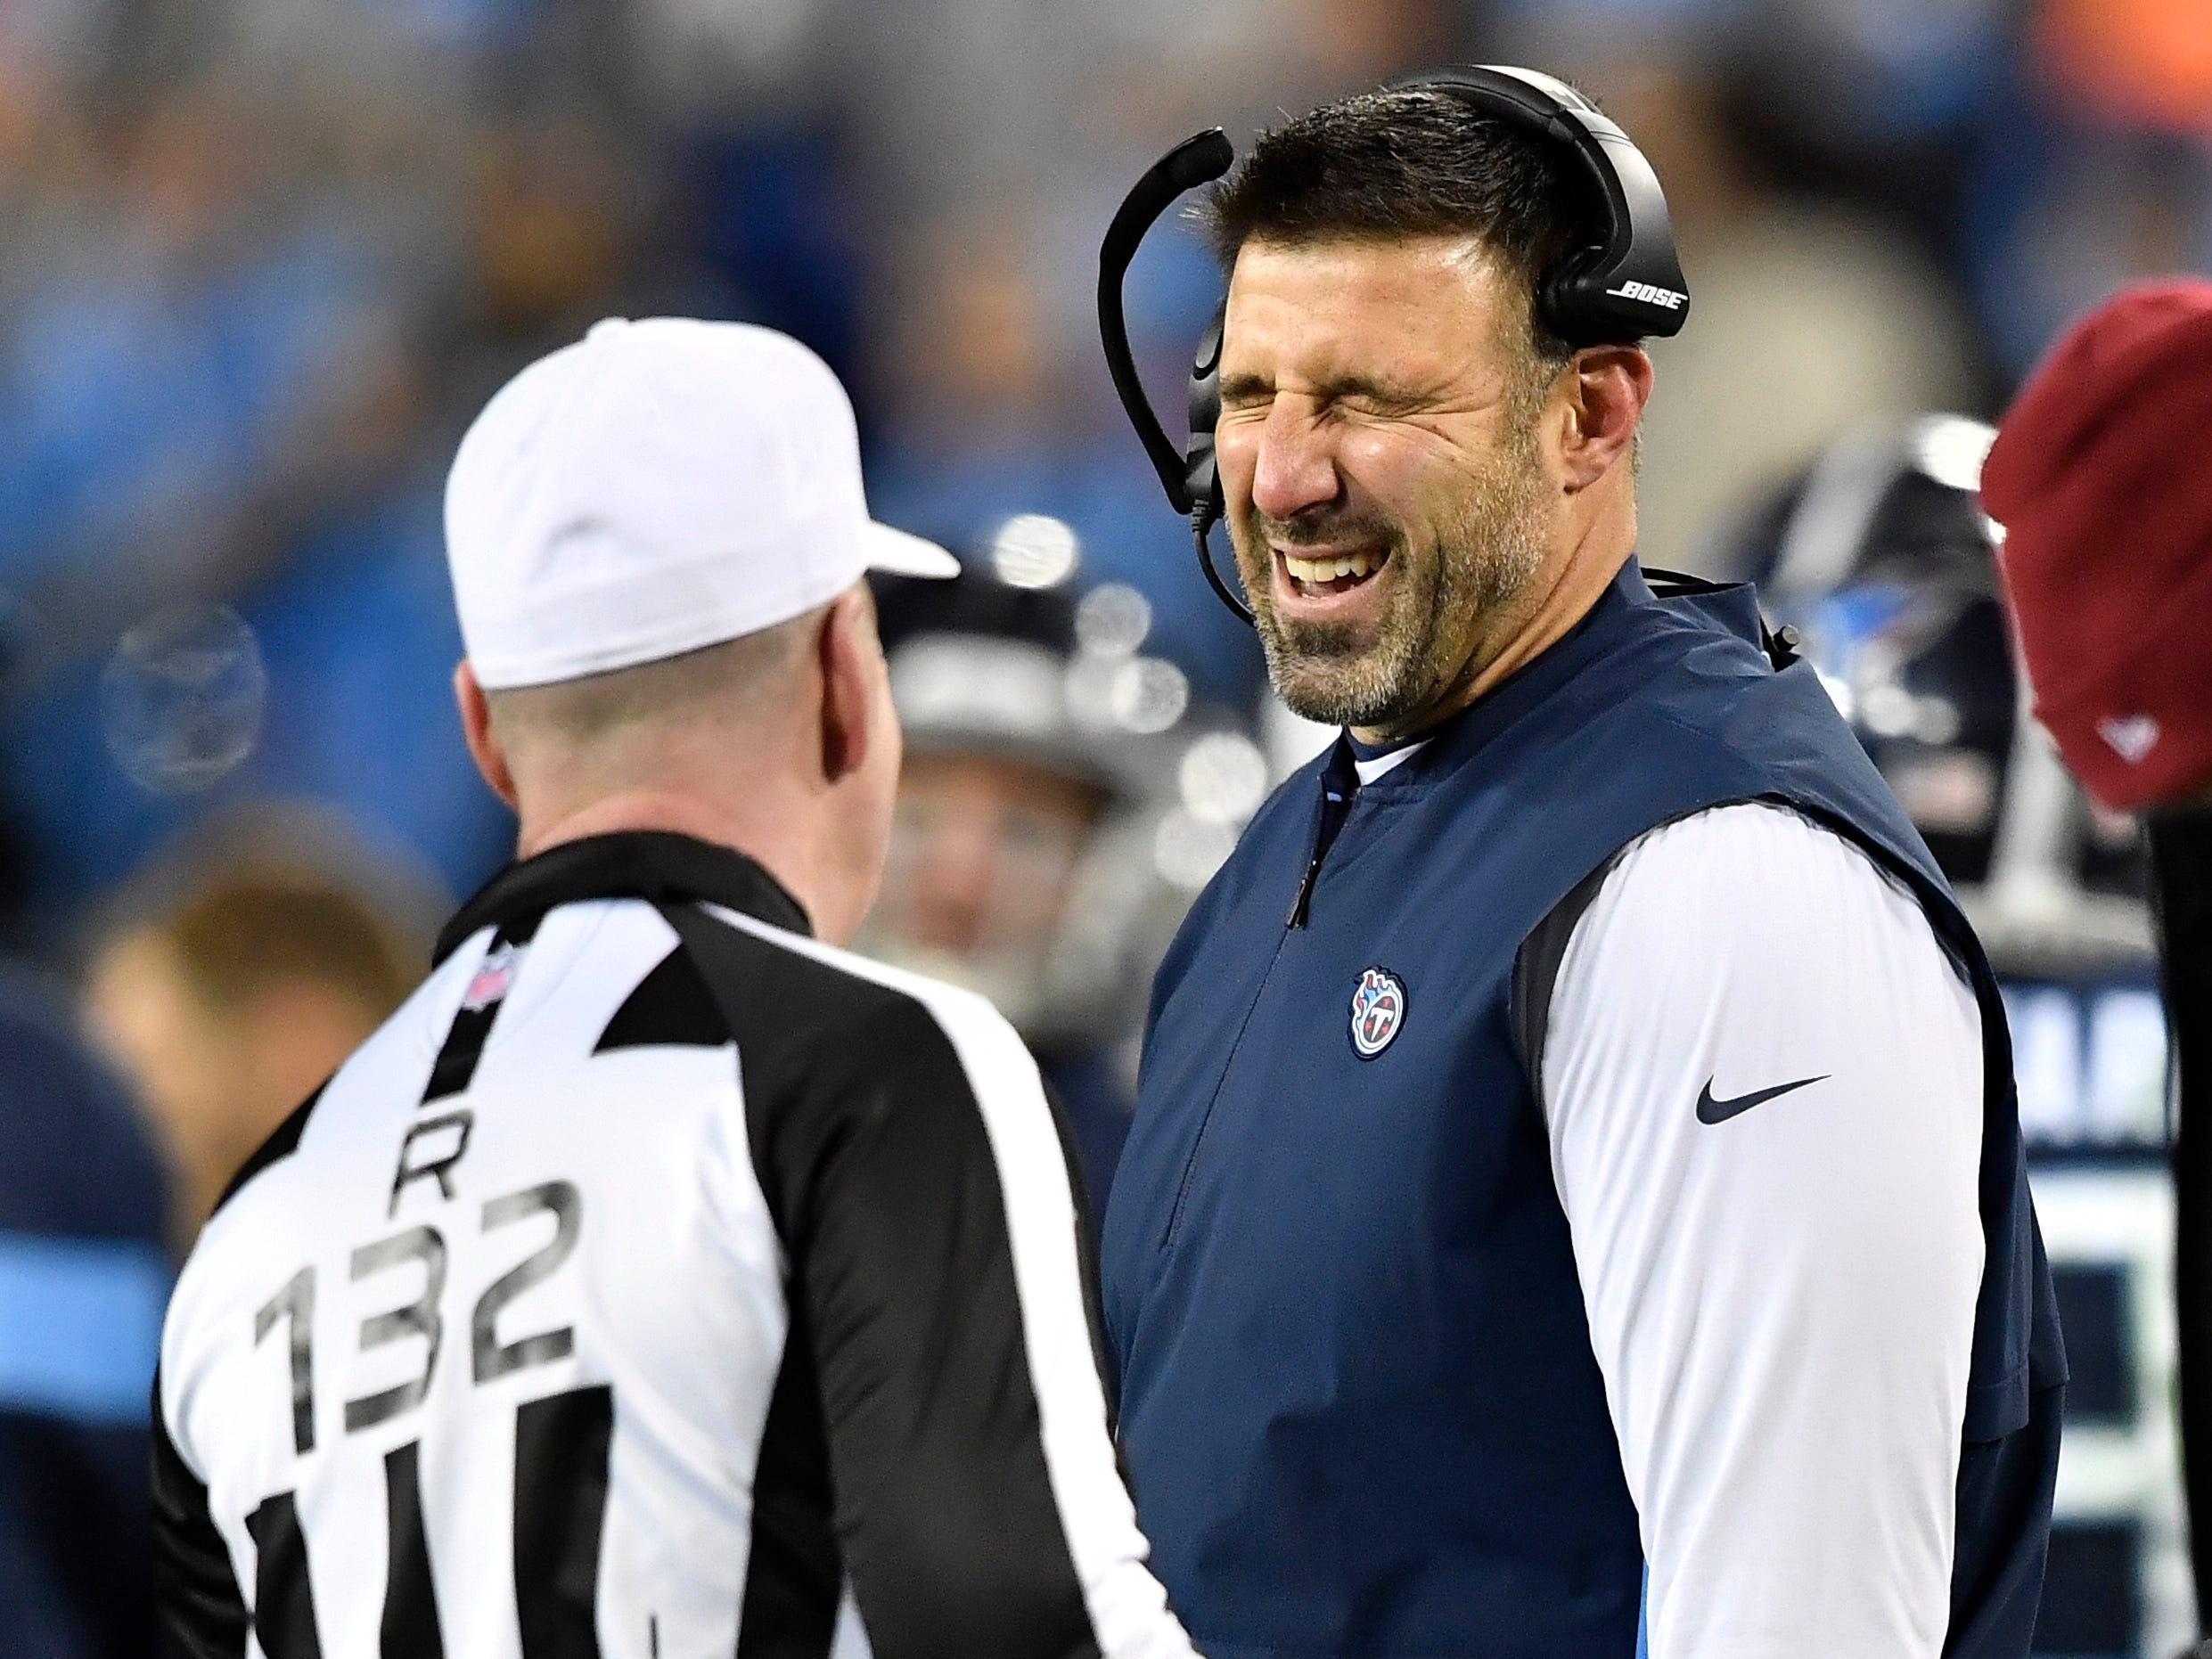 Titans head coach Mike Vrabel argues a call in the third quarter at Nissan Stadium Thursday, Dec. 6, 2018, in Nashville, Tenn.